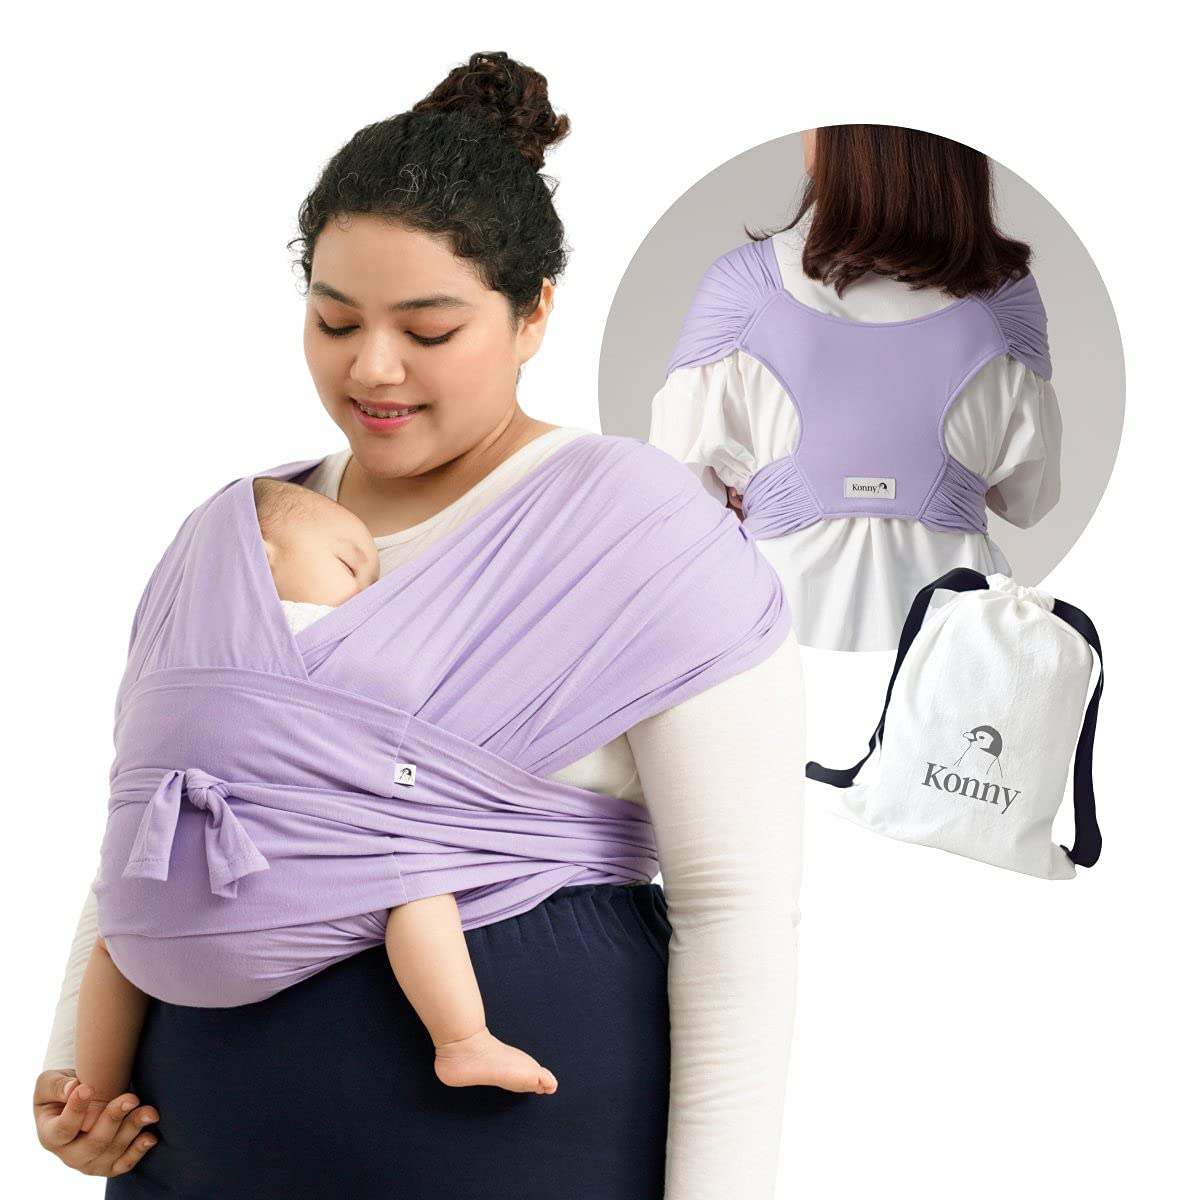 Konny Baby Carrier Ultra-Lightweight Wrap Sl Genuine Free Shipping Max 62% OFF Hassle-Free